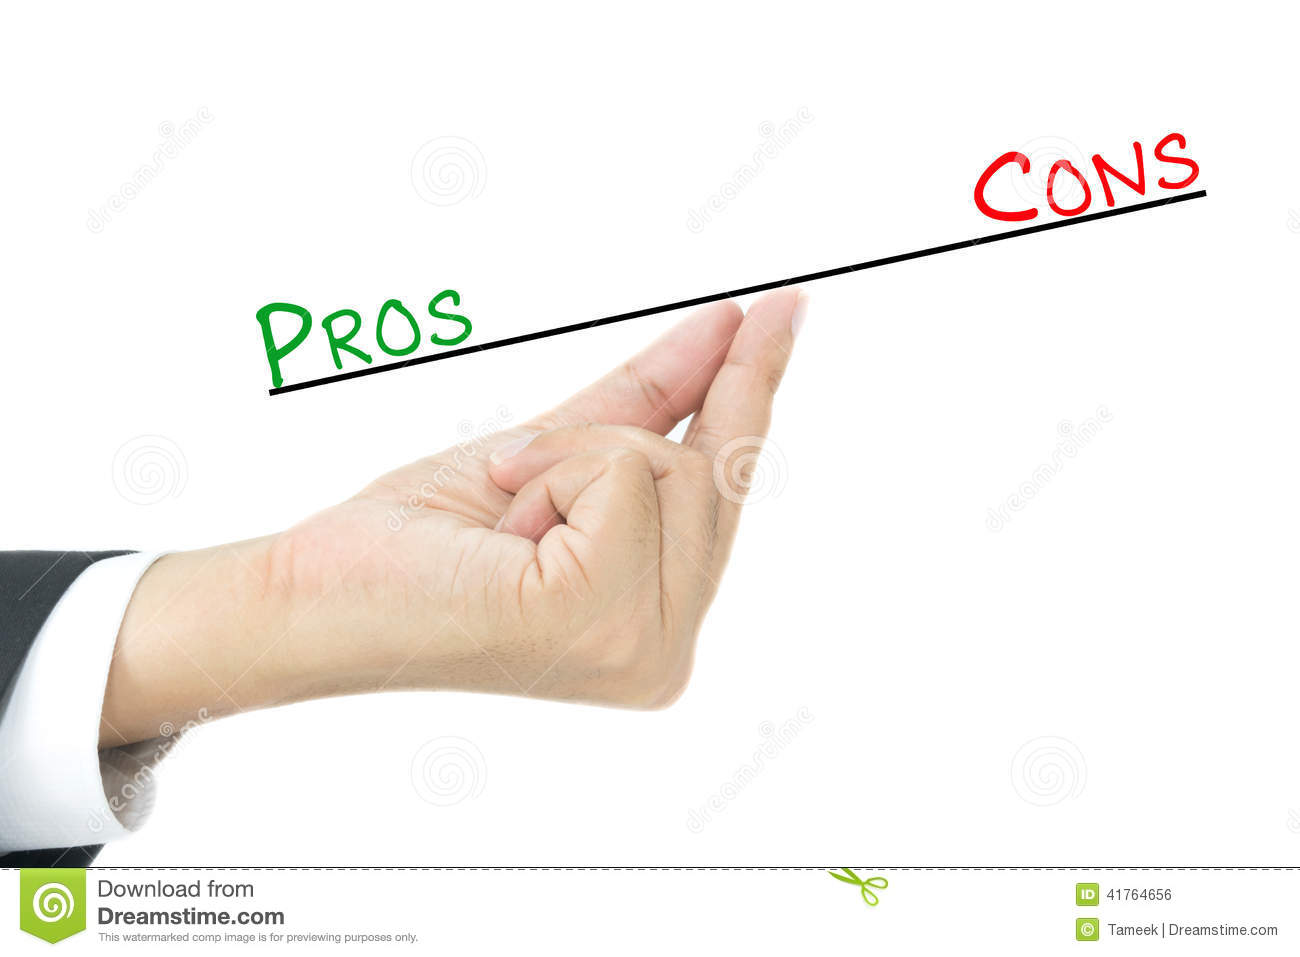 Pros and cons comparison.